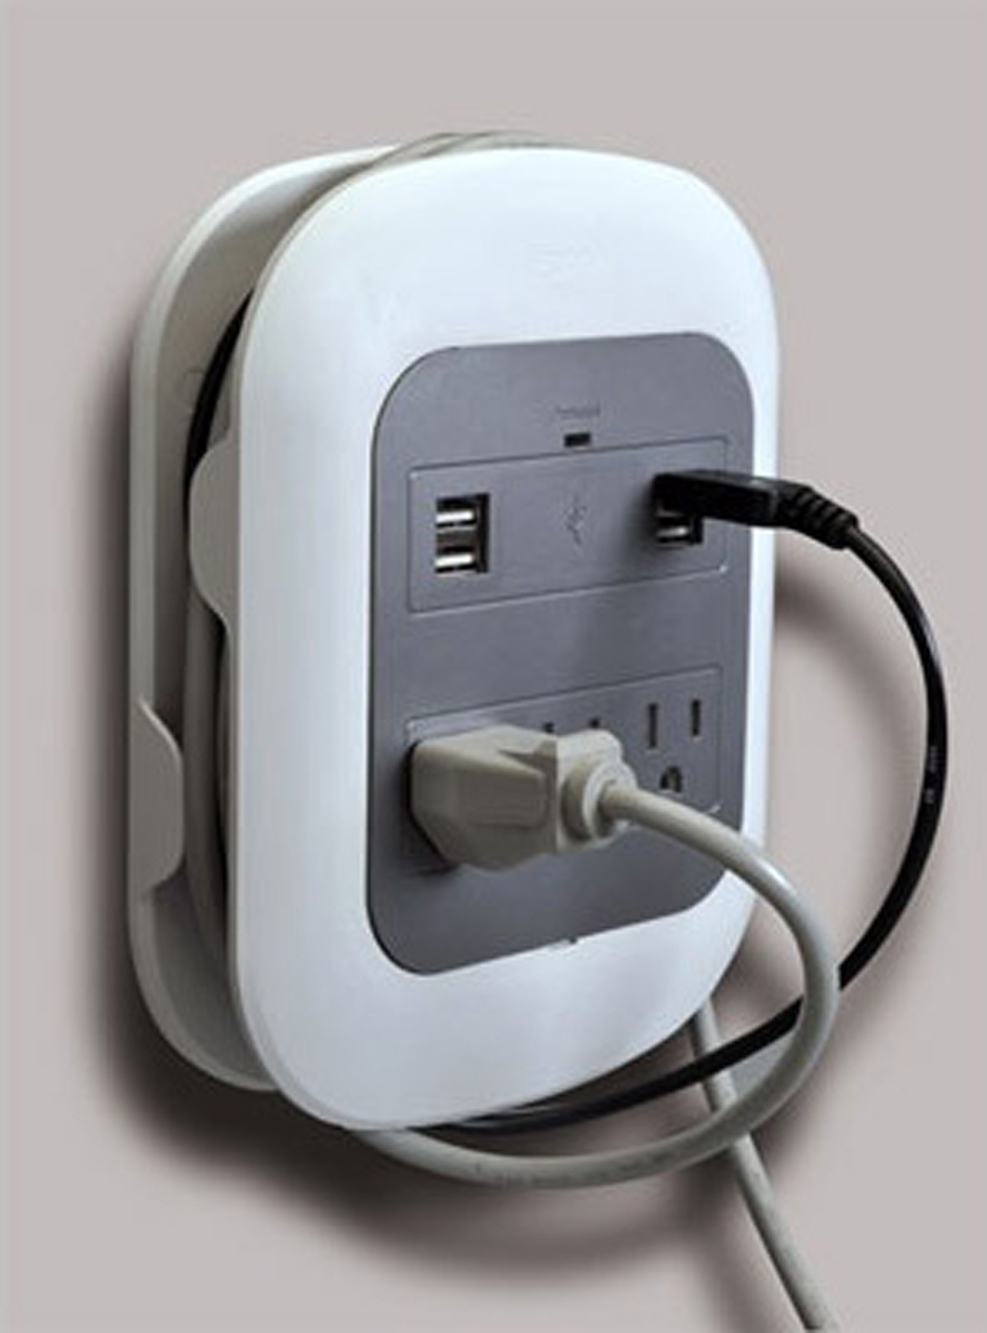 Legrand Offers Easy-to-Install Outlet and USB Chargers | Business Wire